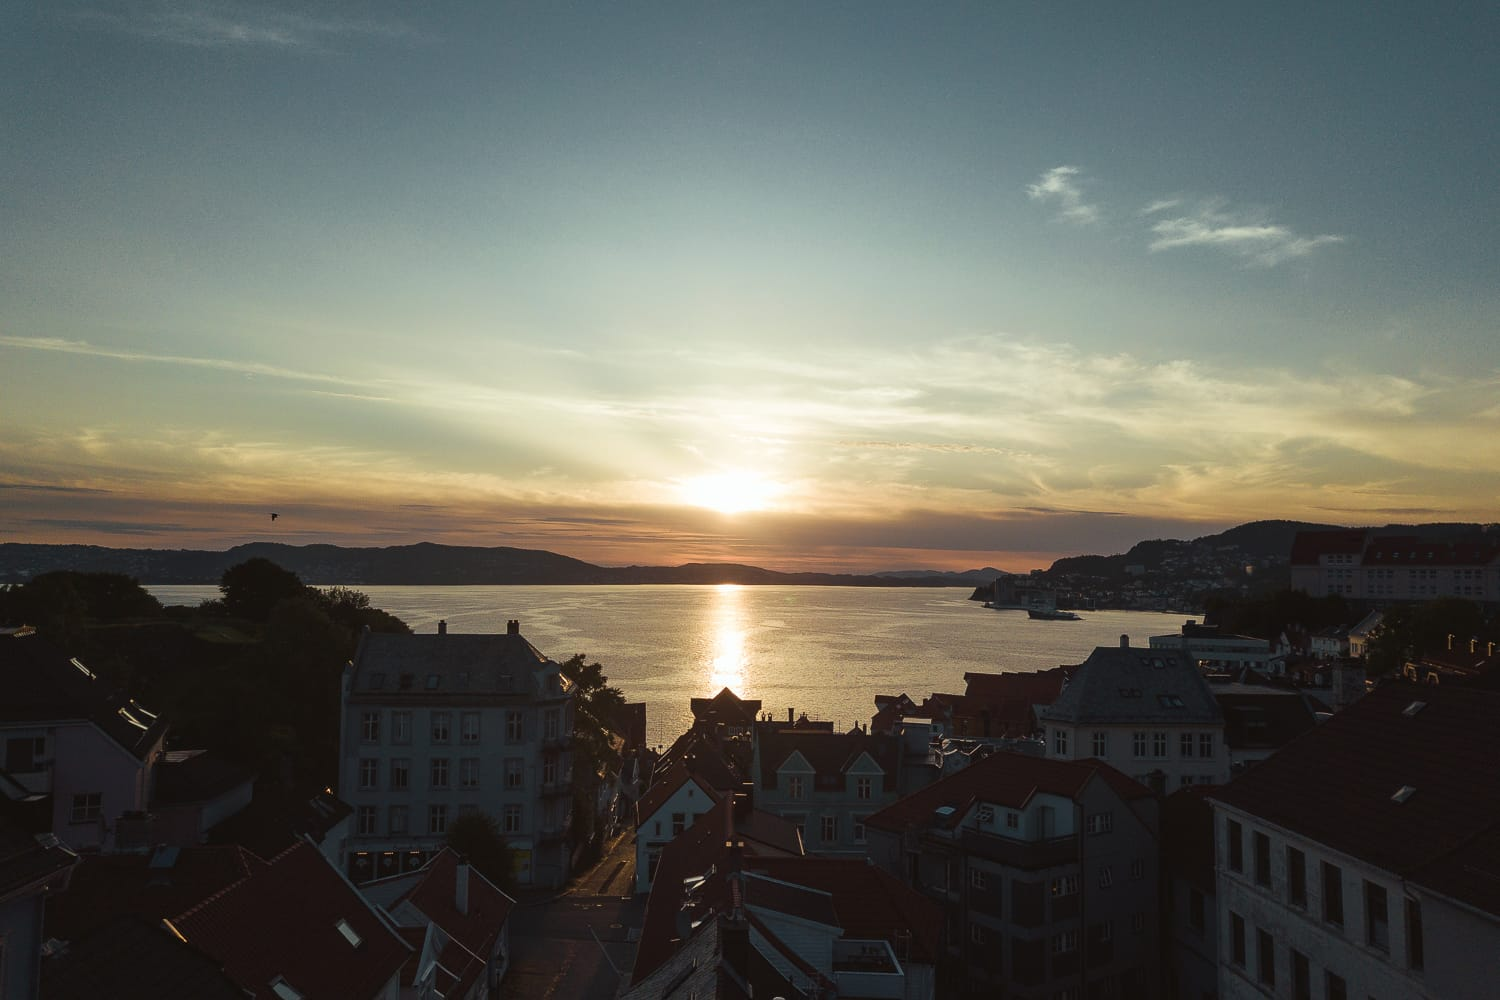 City of Bergen during sunset